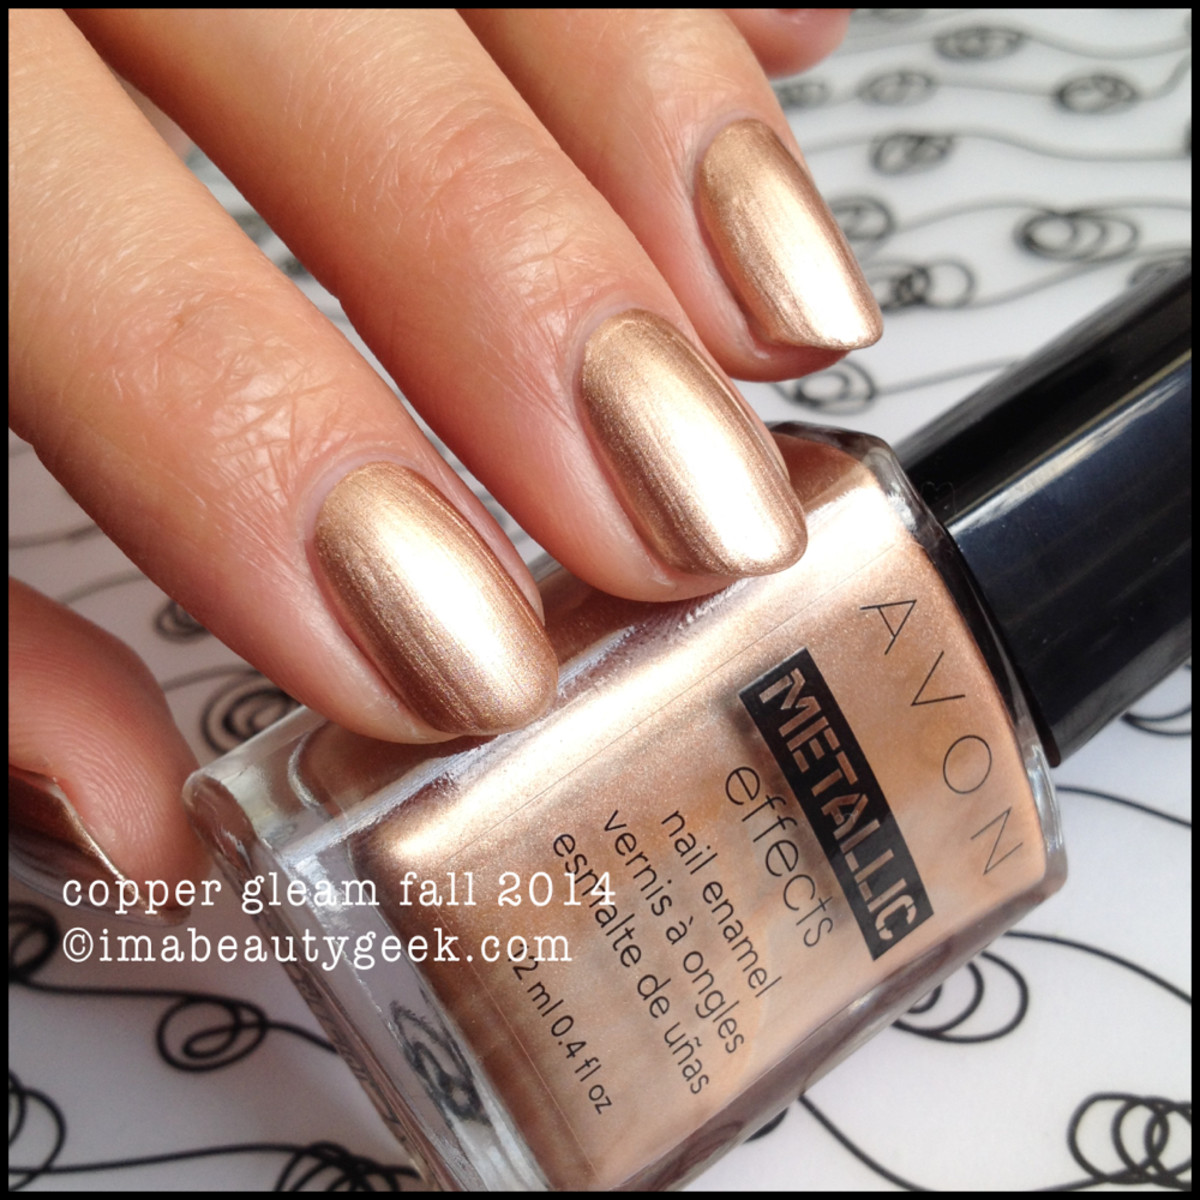 Avon Polish Fall 2014 Copper Gleam Metallic Effects